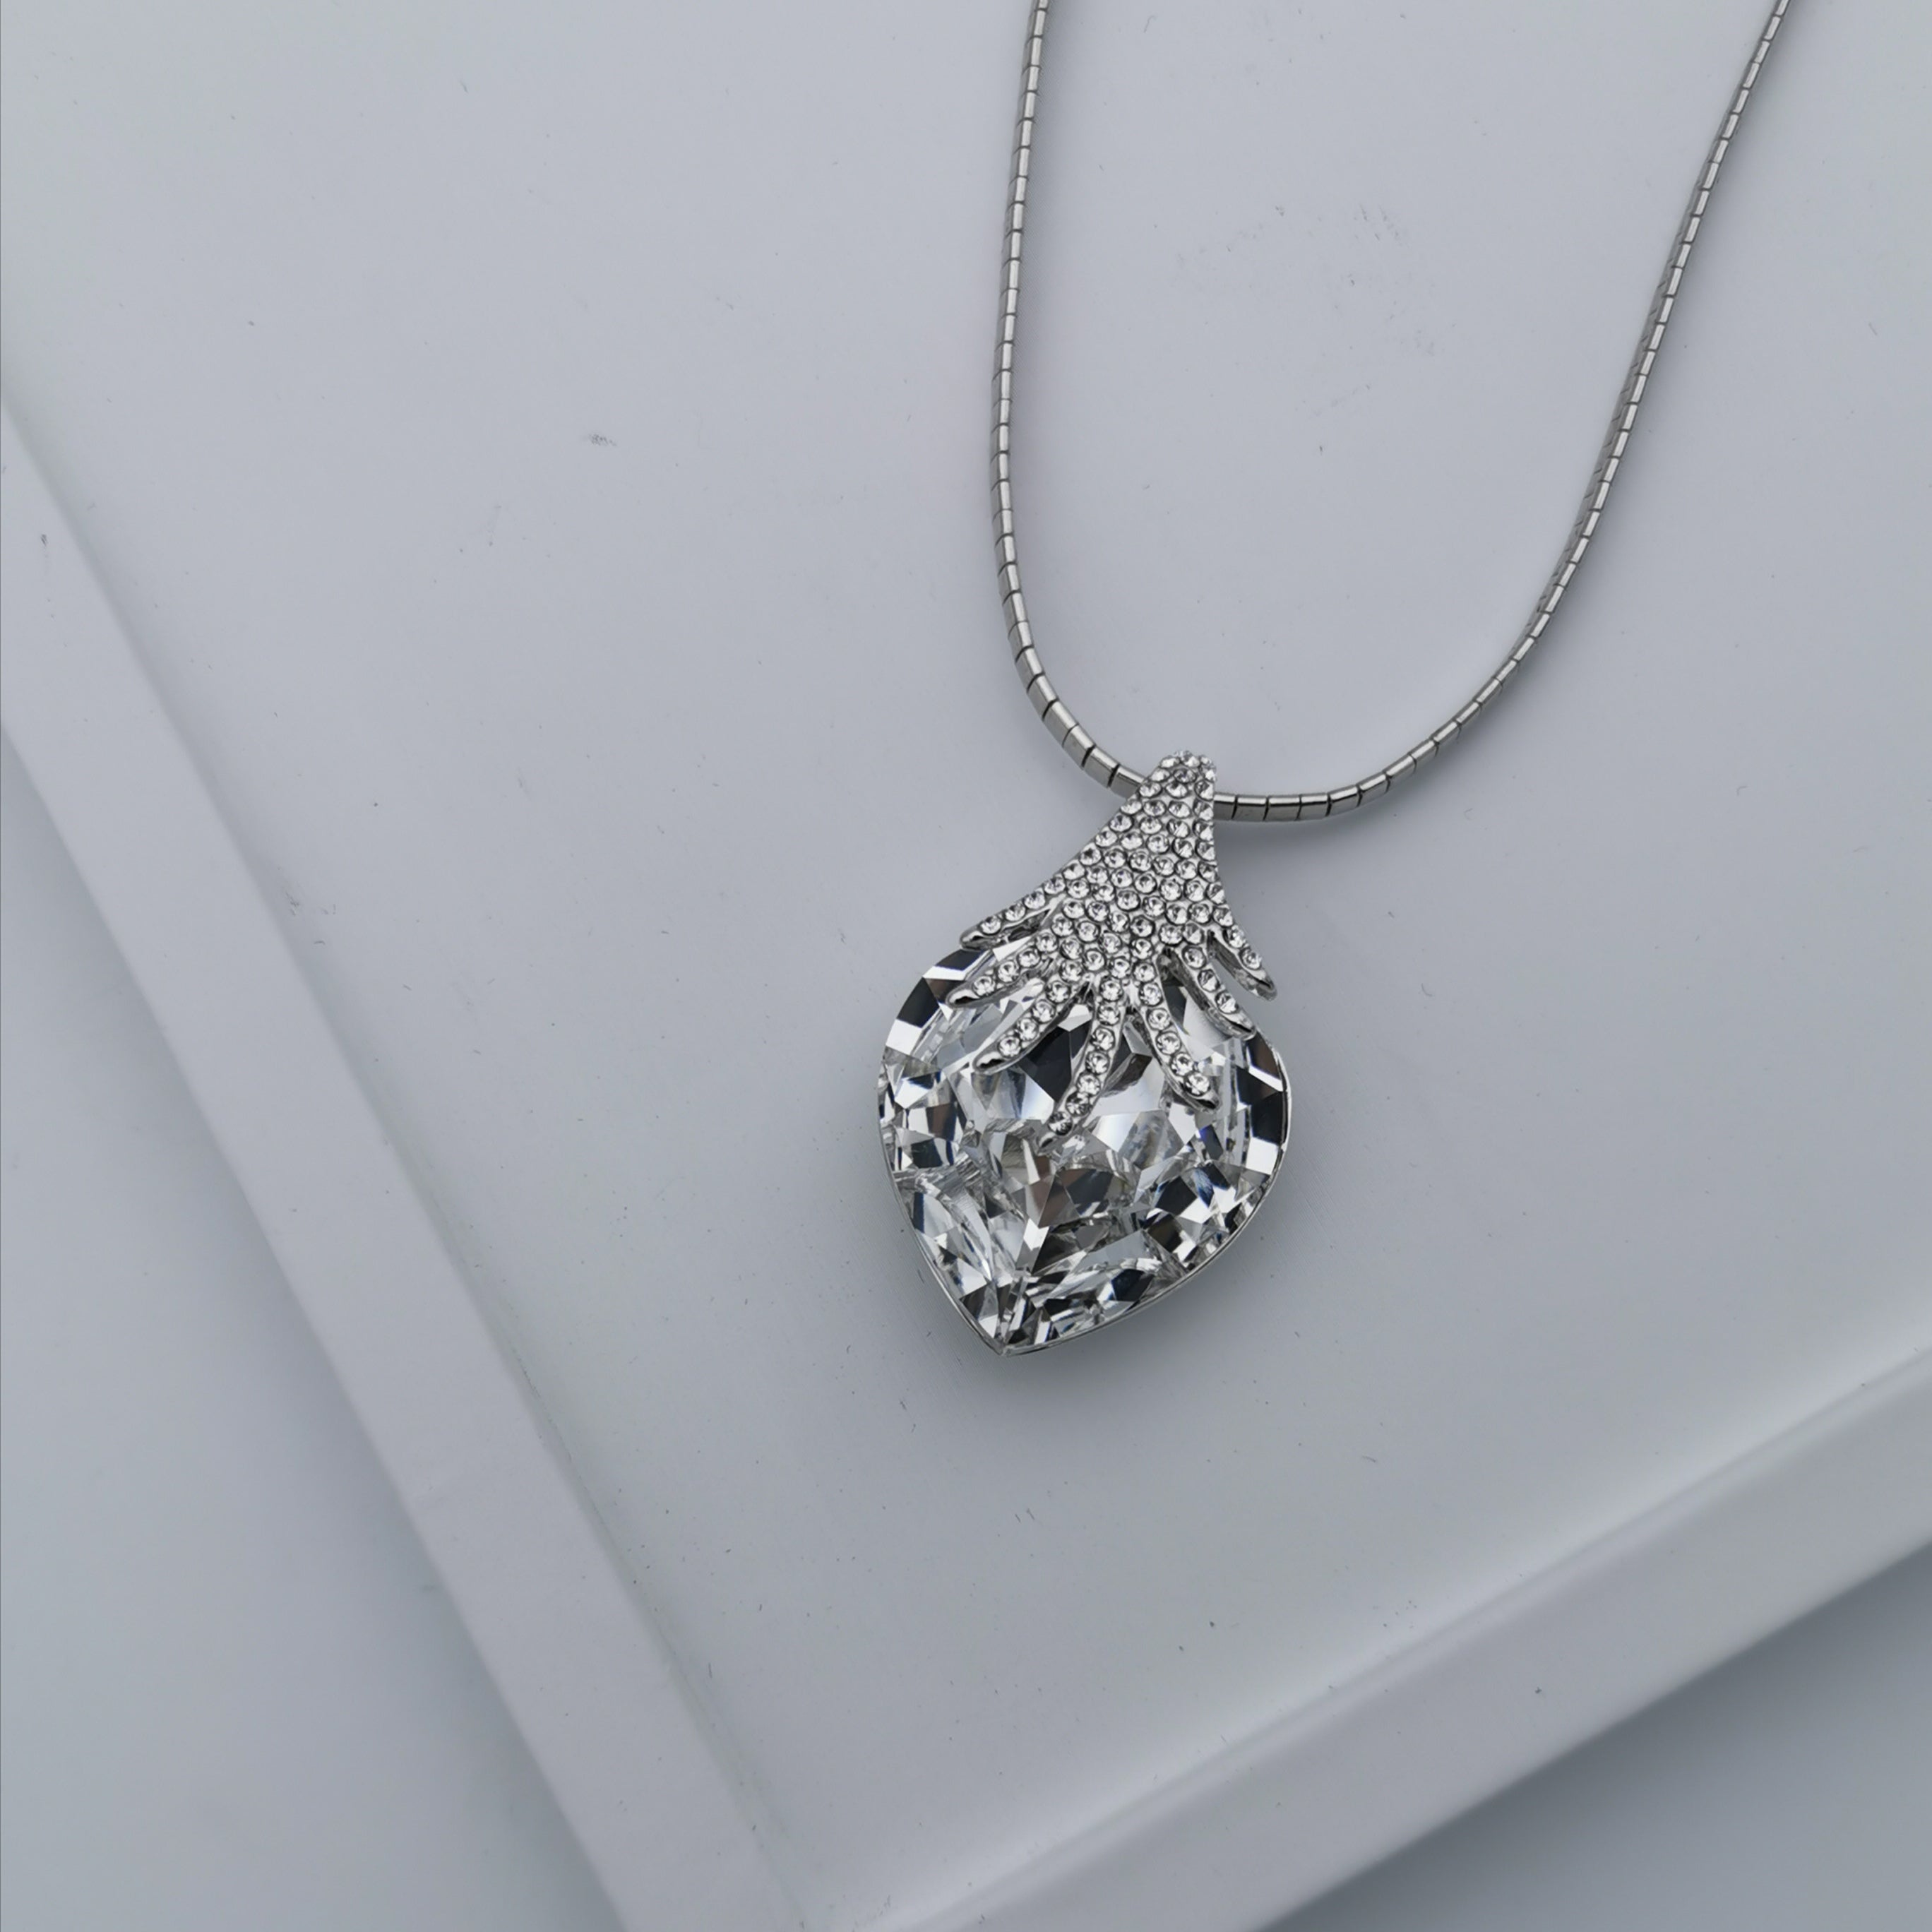 Swarovski element elegant necklace